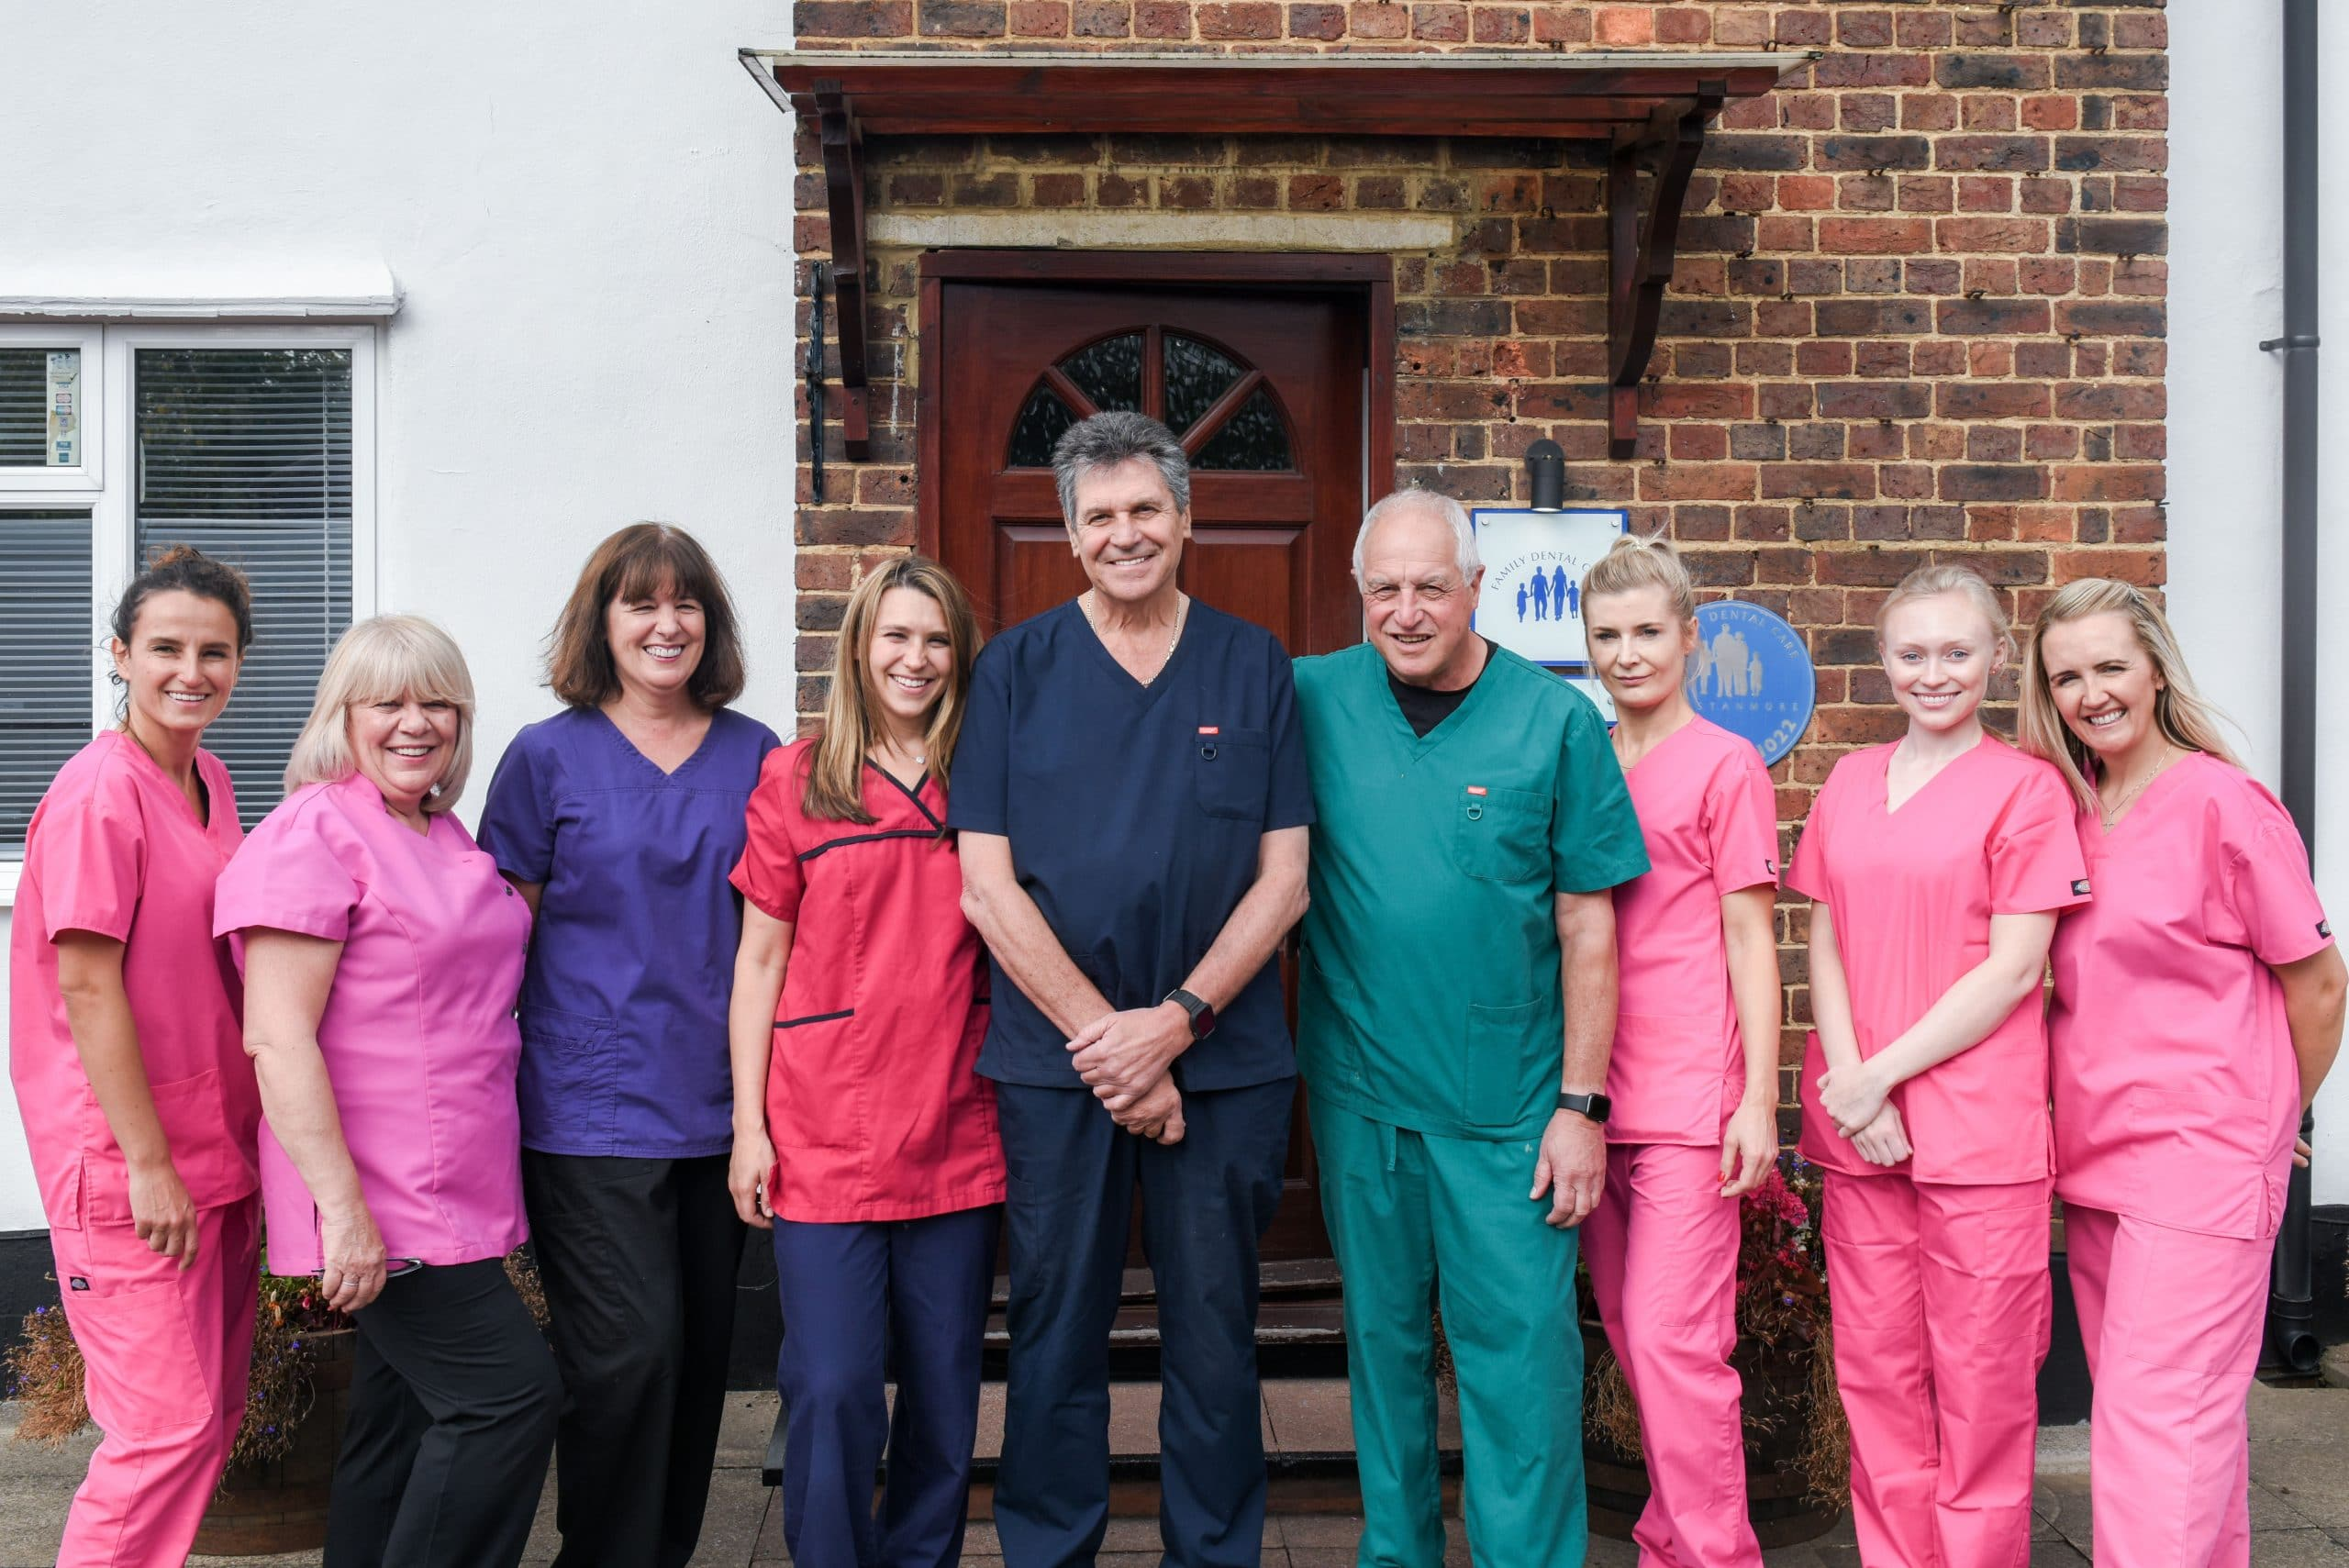 The Team at Family Dental Care